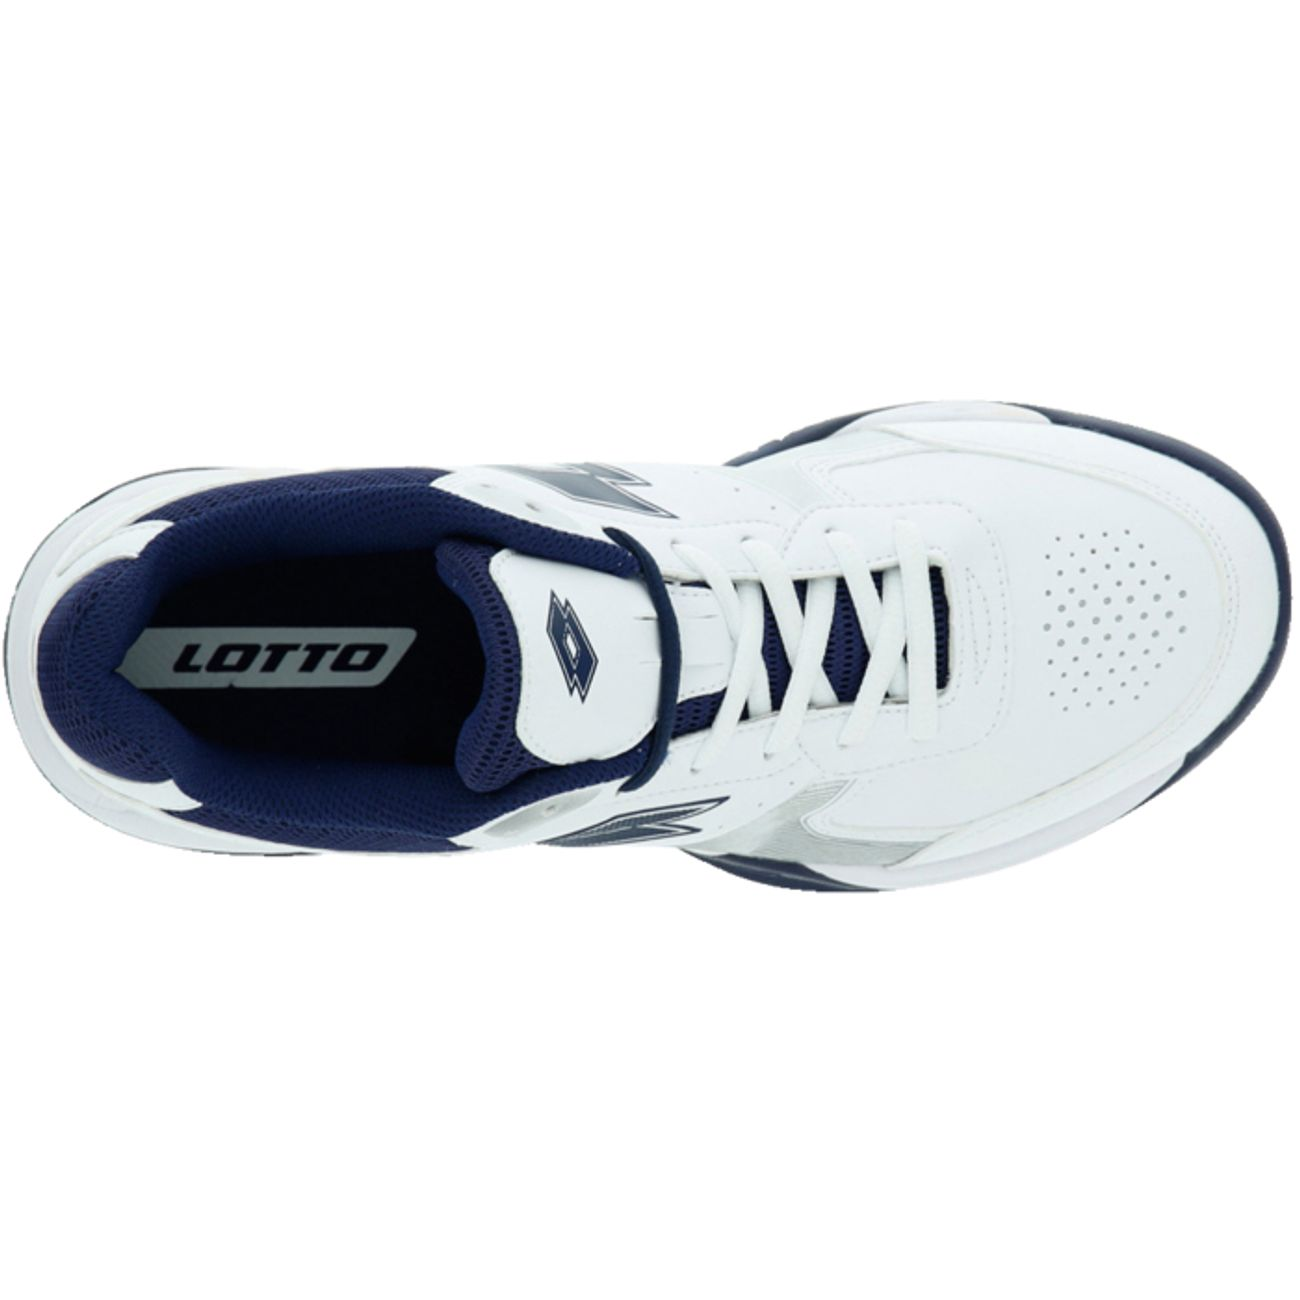 CHAUSSURES BASSES Tennis homme LOTTO SPACE 600 ALR